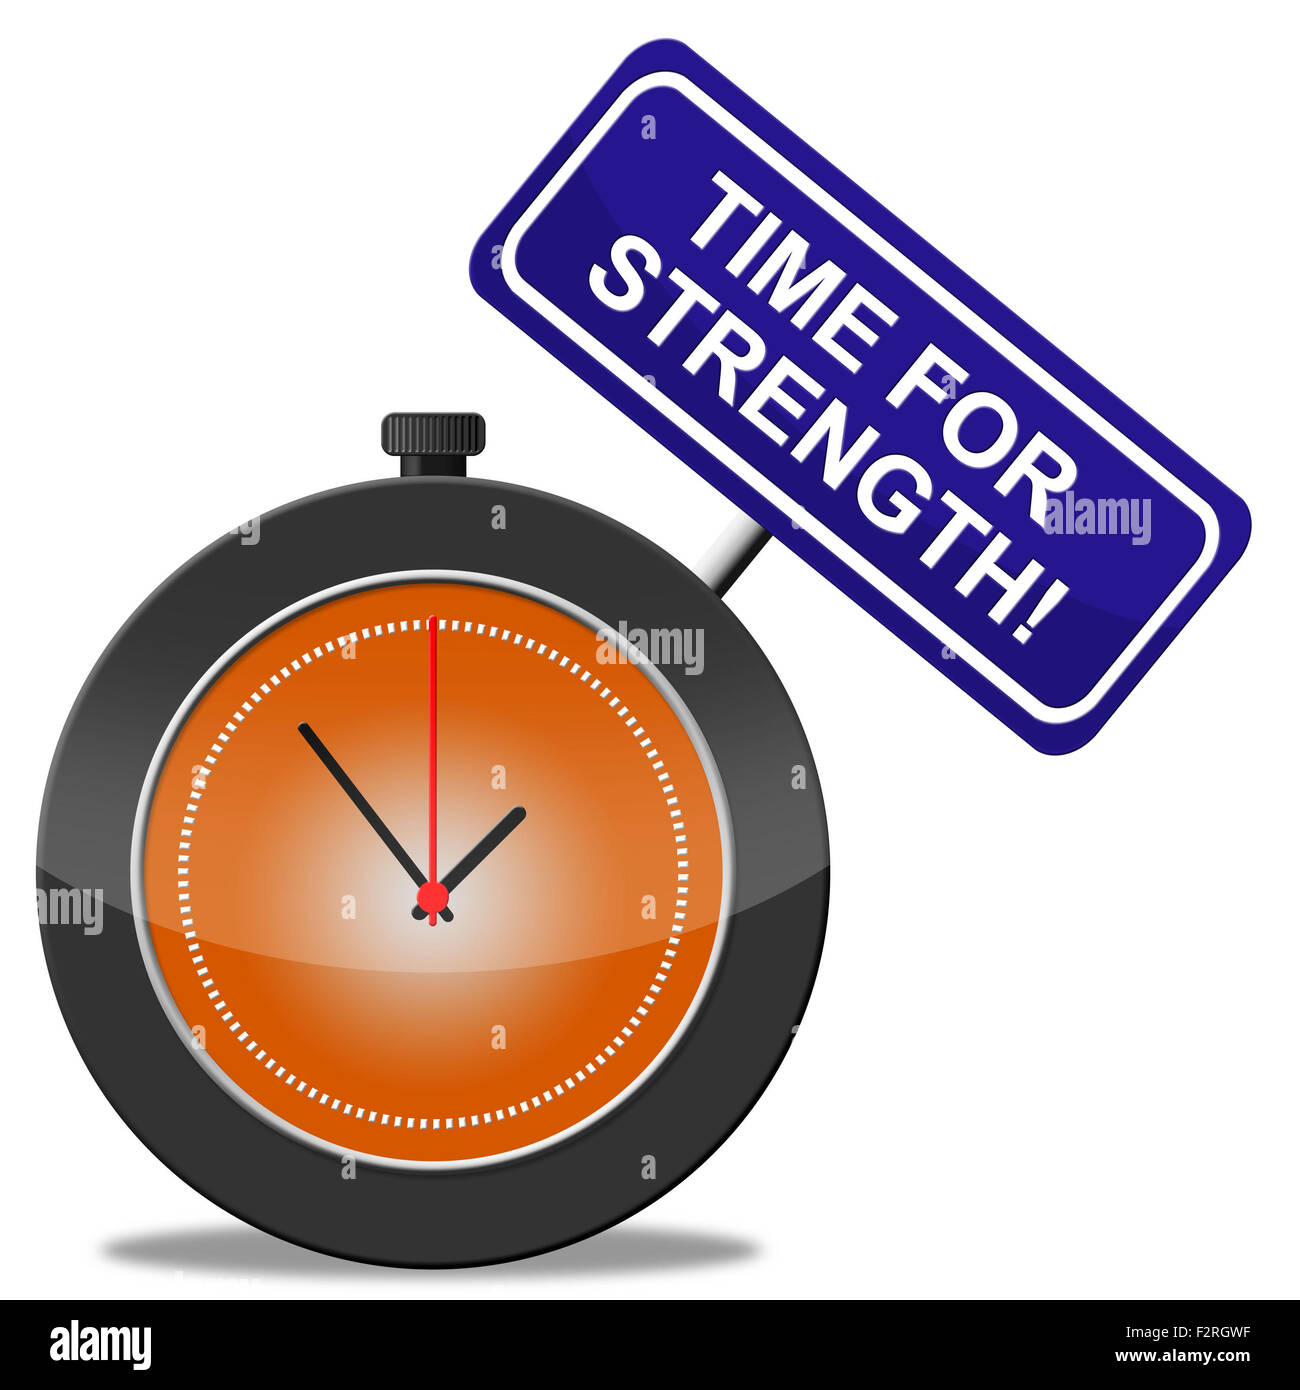 Time For Strength Meaning Vigour Muscle And Strengthen - Stock Image